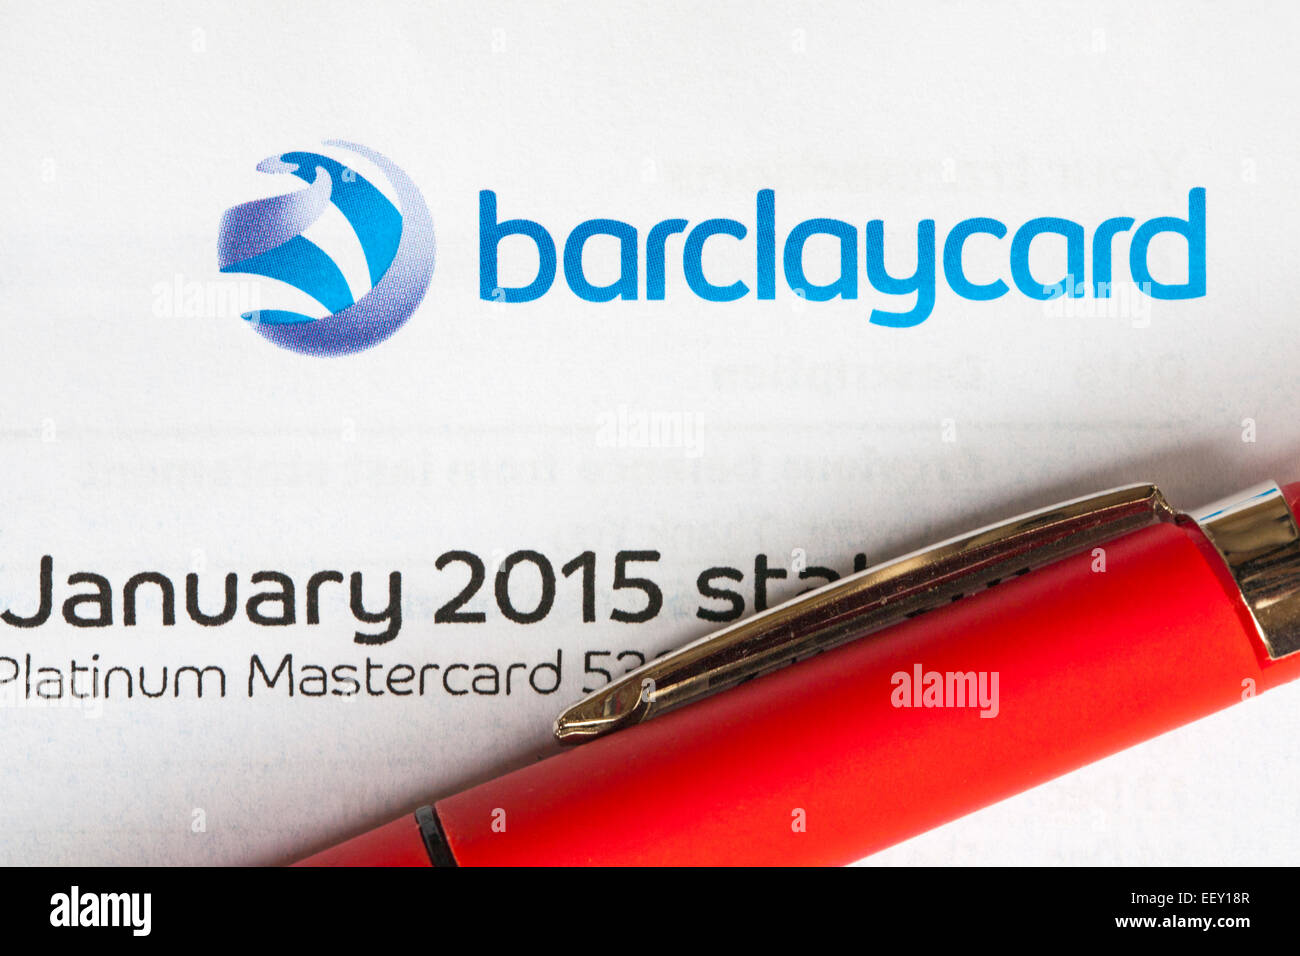 After Christmas spending the Barclaycard January 2015 statement arrives - Platinum Mastercard - Stock Image